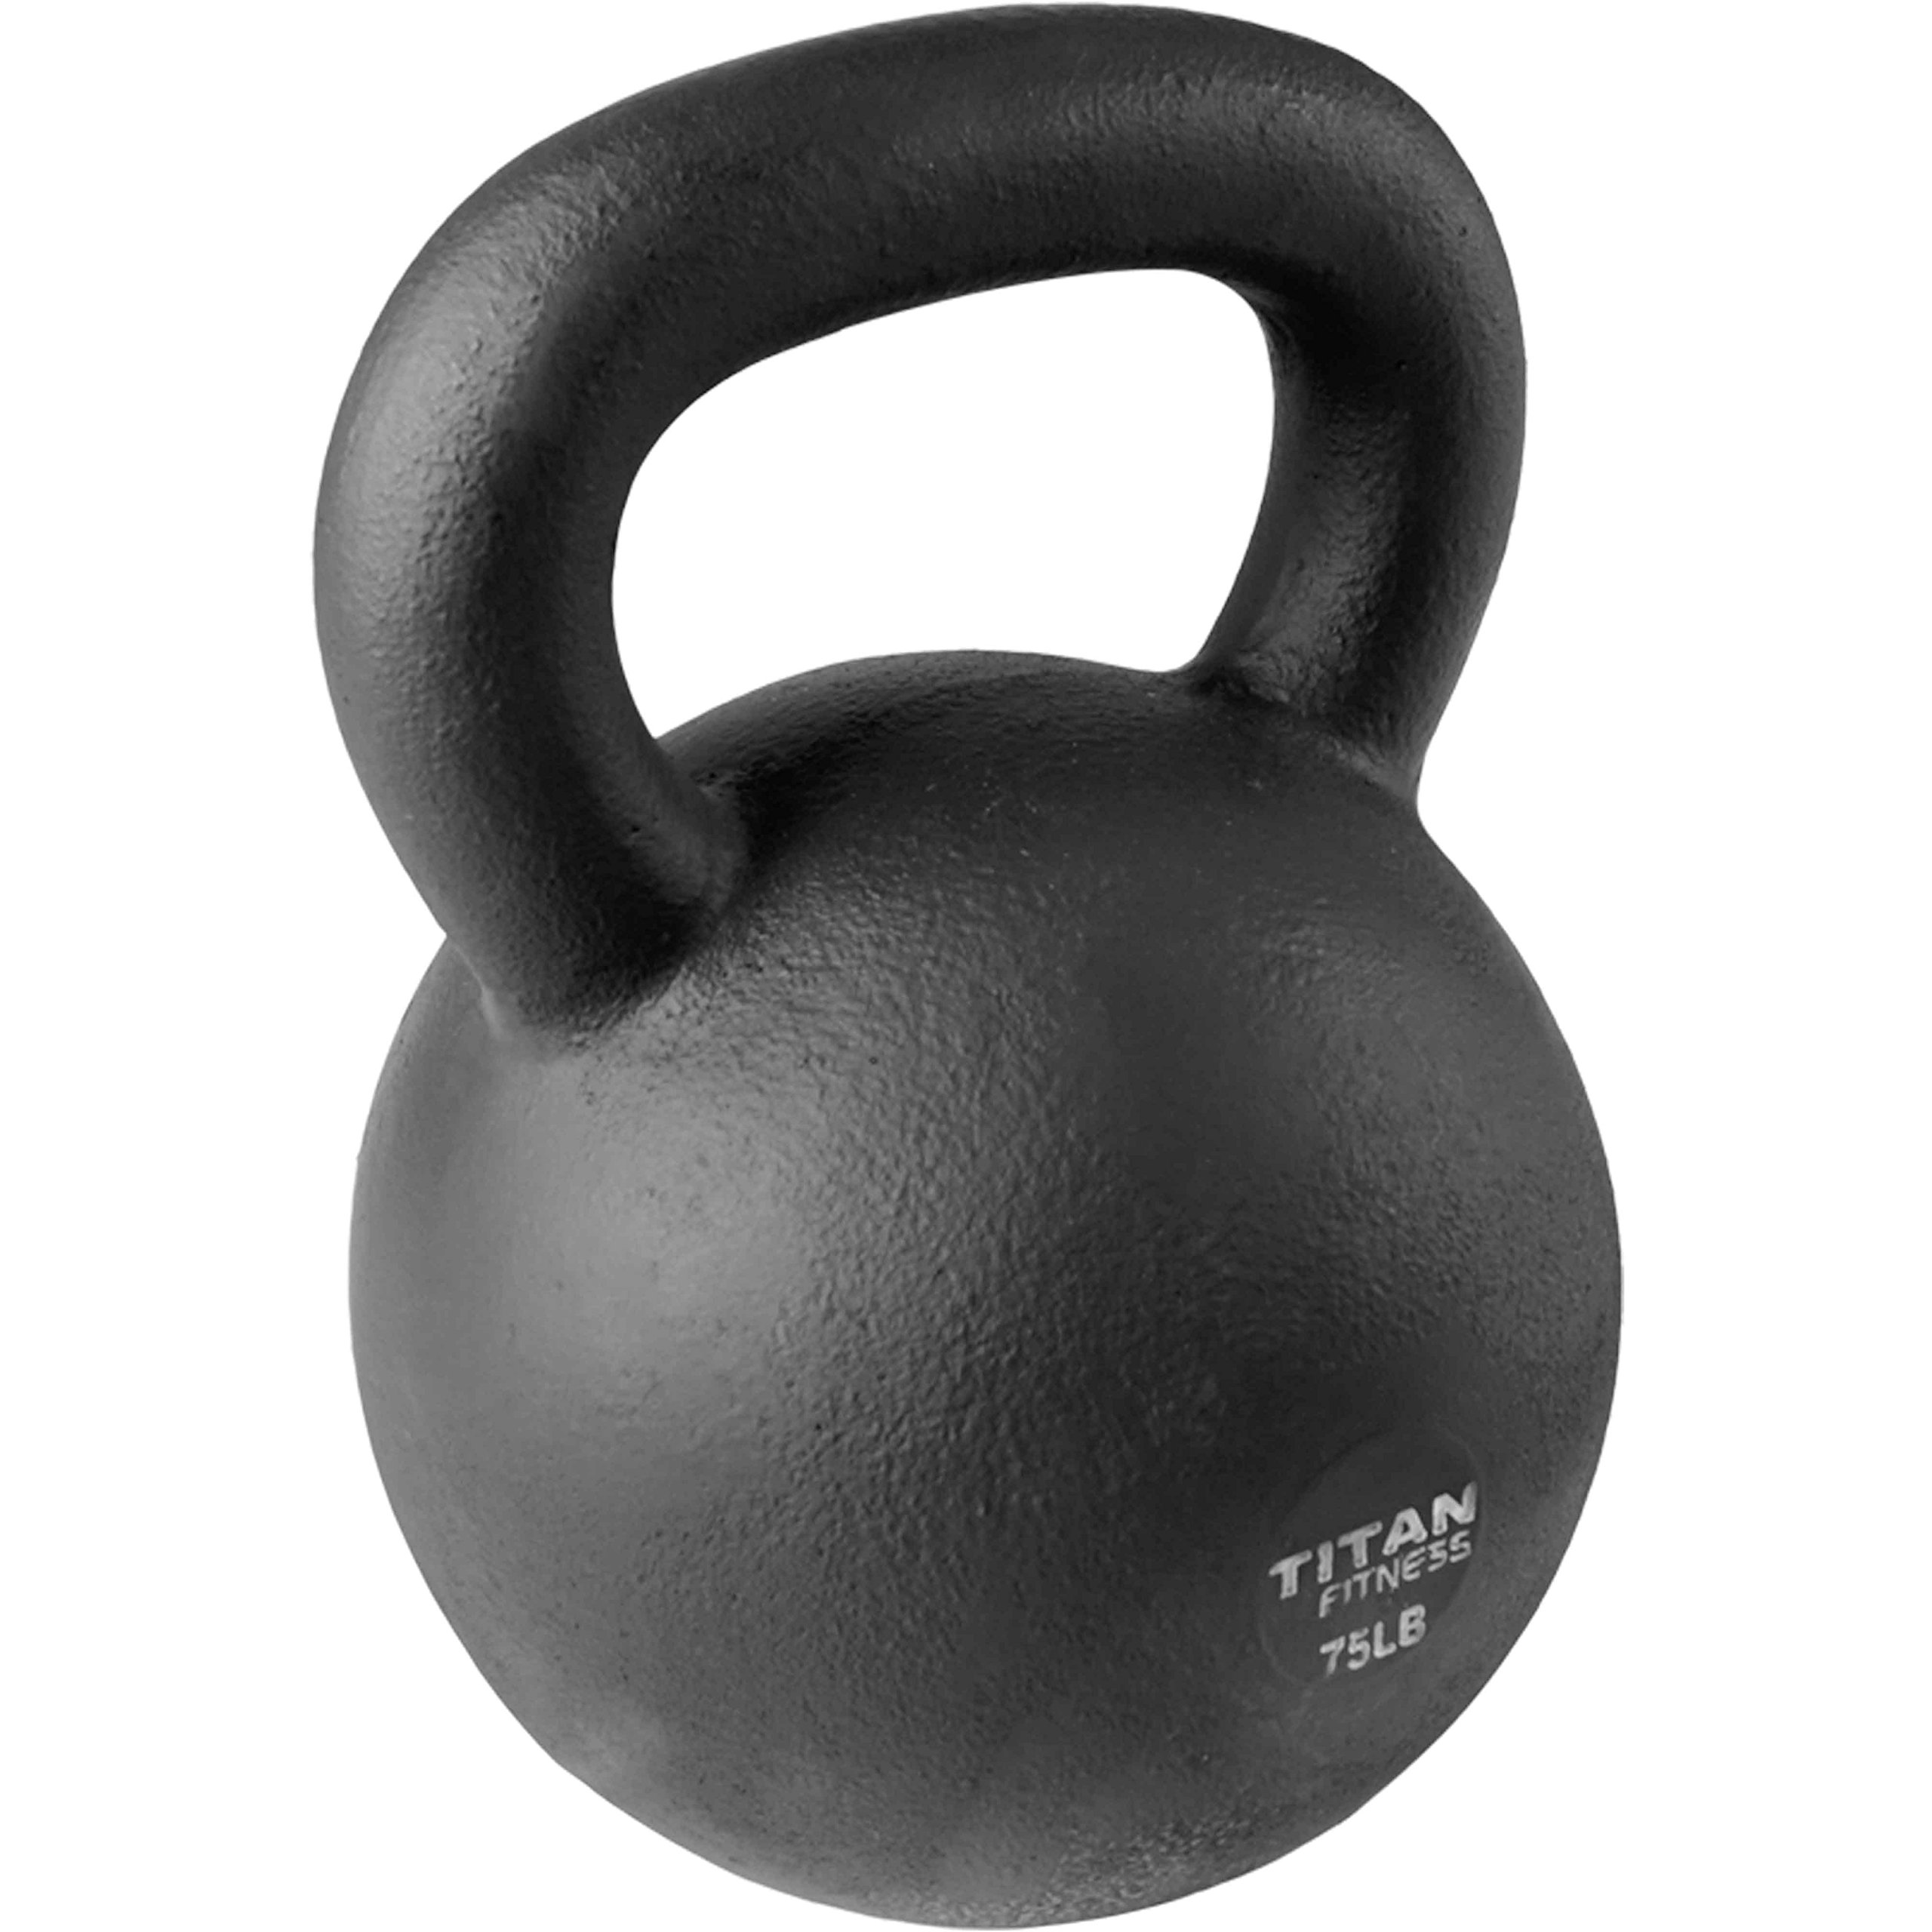 Cast Iron Kettlebell Weight 75 lb Natural Solid Titan Fitness Workout Swing by Titan Fitness (Image #5)